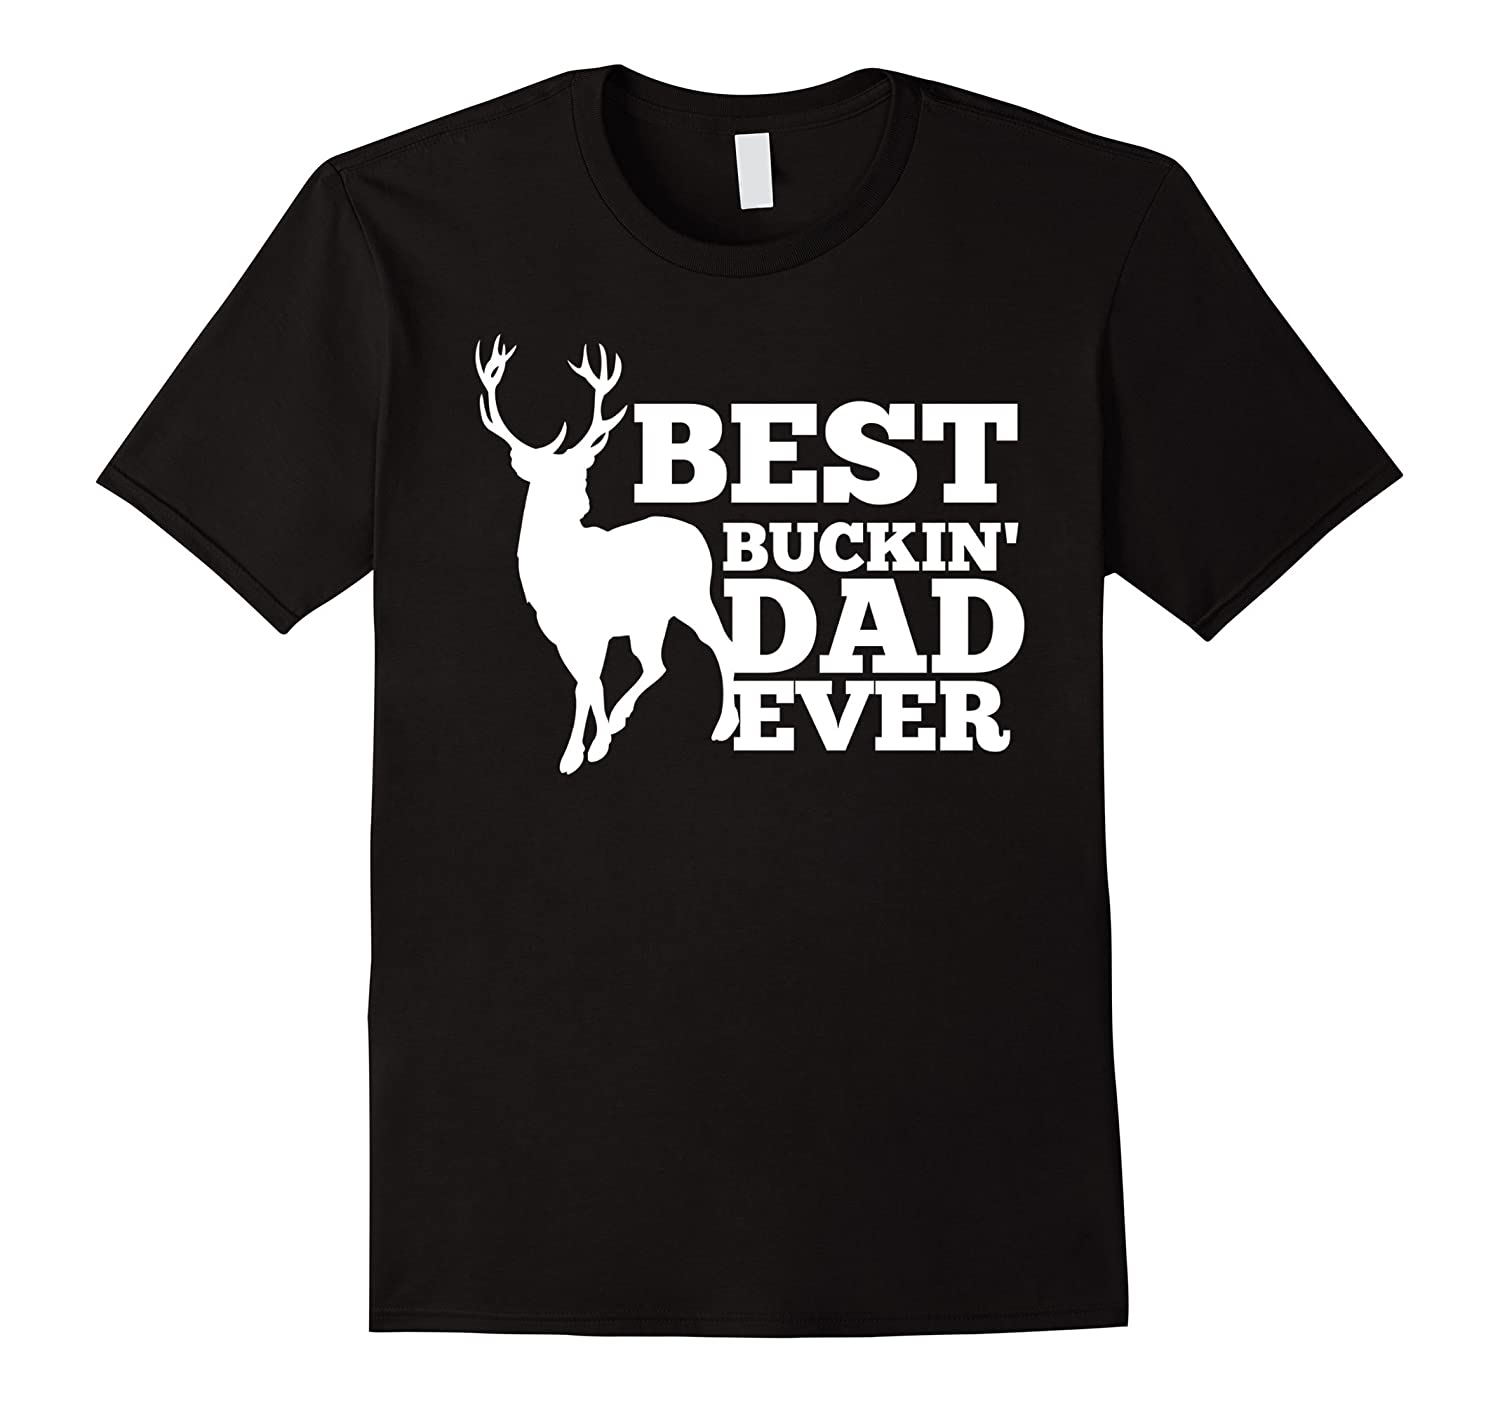 Mens Best Buckin' Dad Ever Shirt for Deer Hunting Fathers Gift